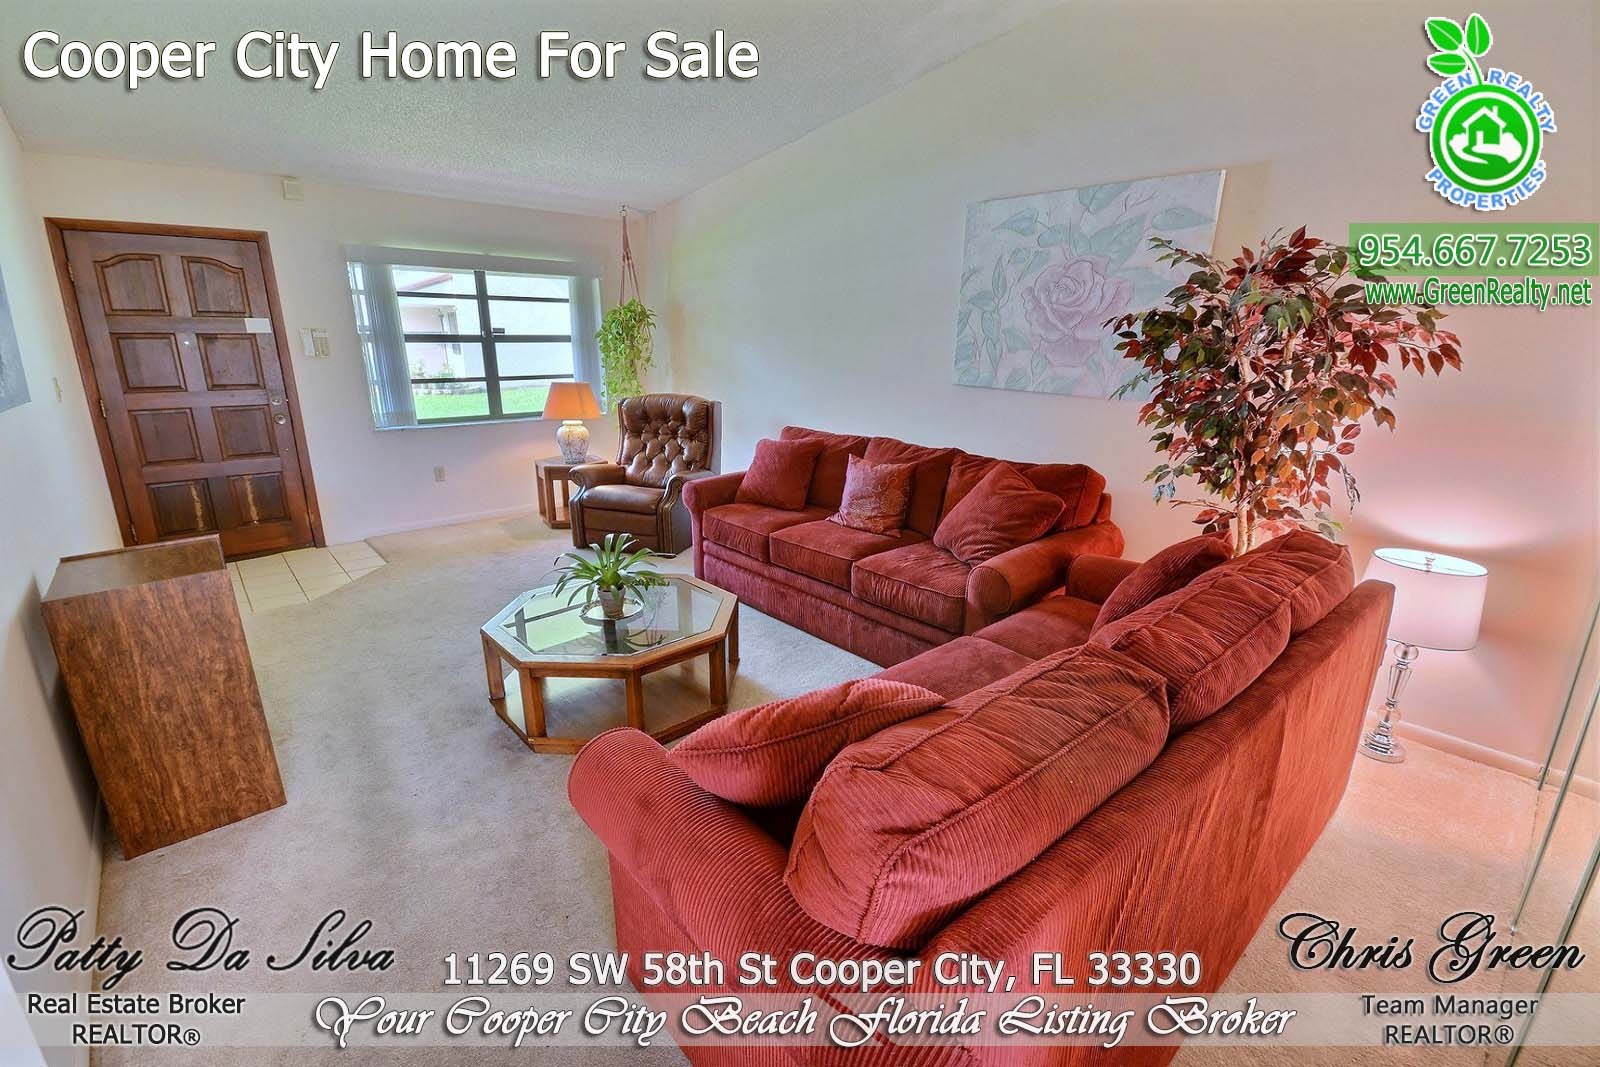 5 Cooper City Real Estate - Villas (10)